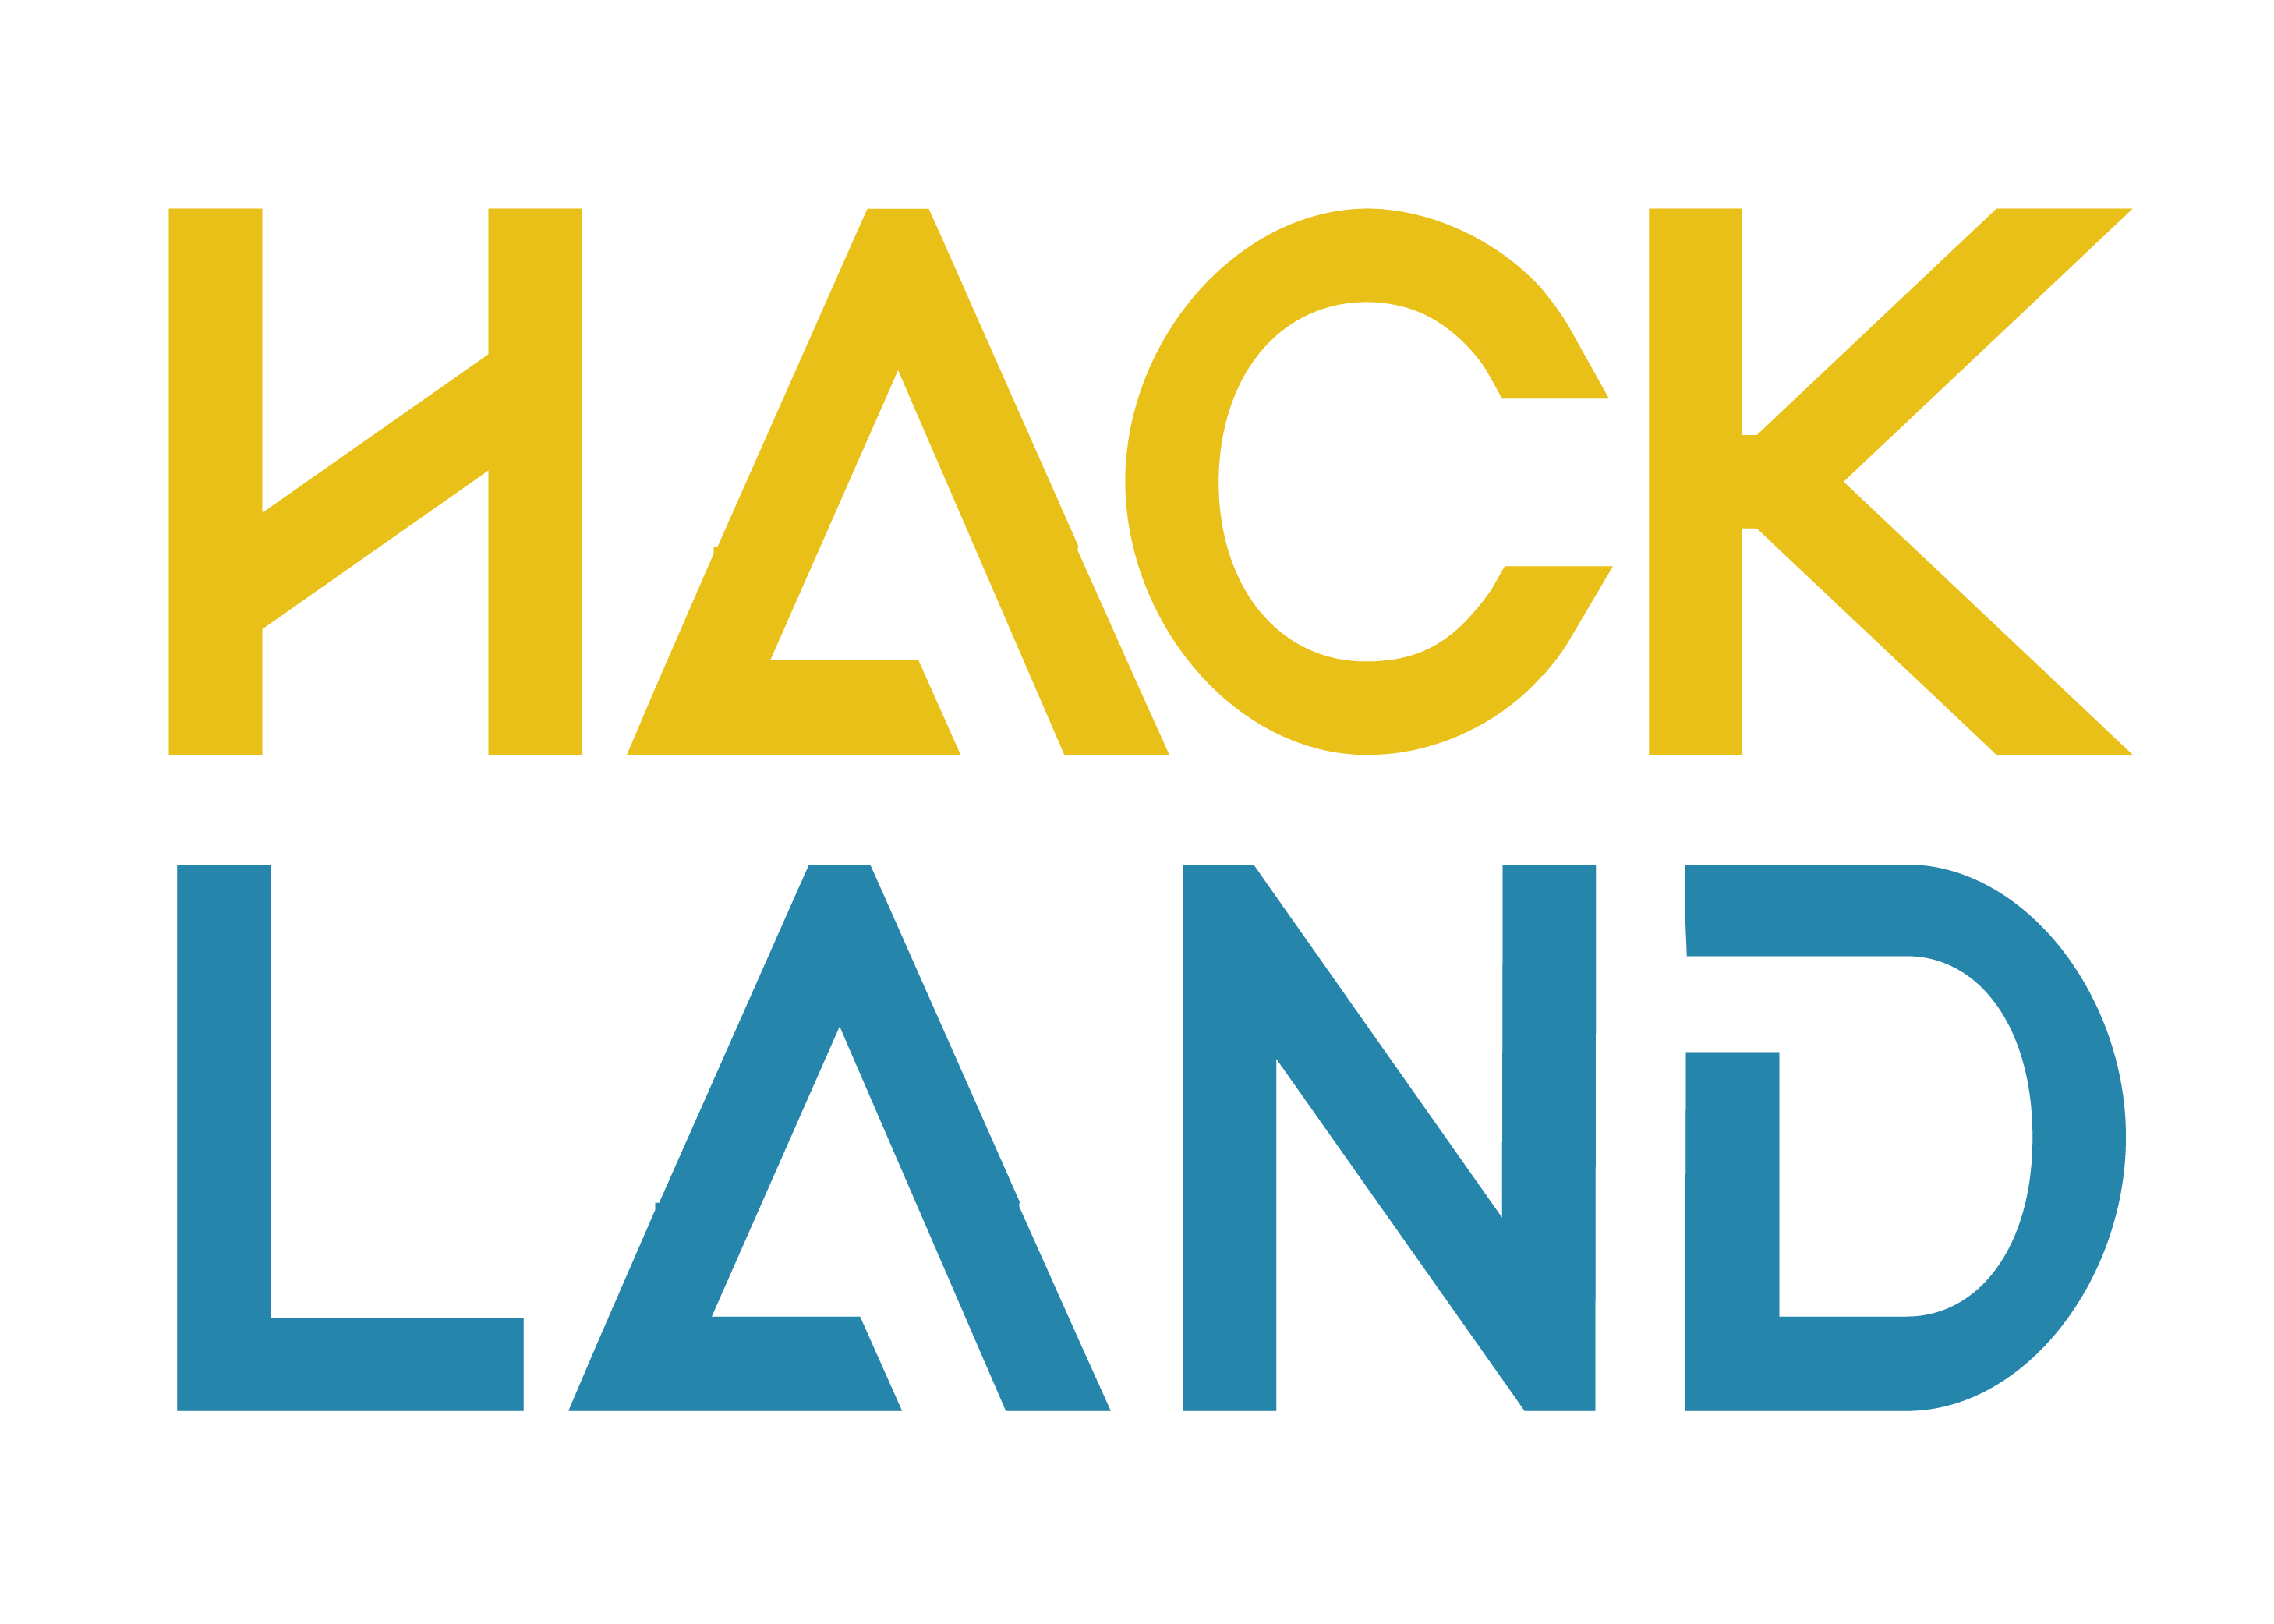 Hackland-2Lines.png